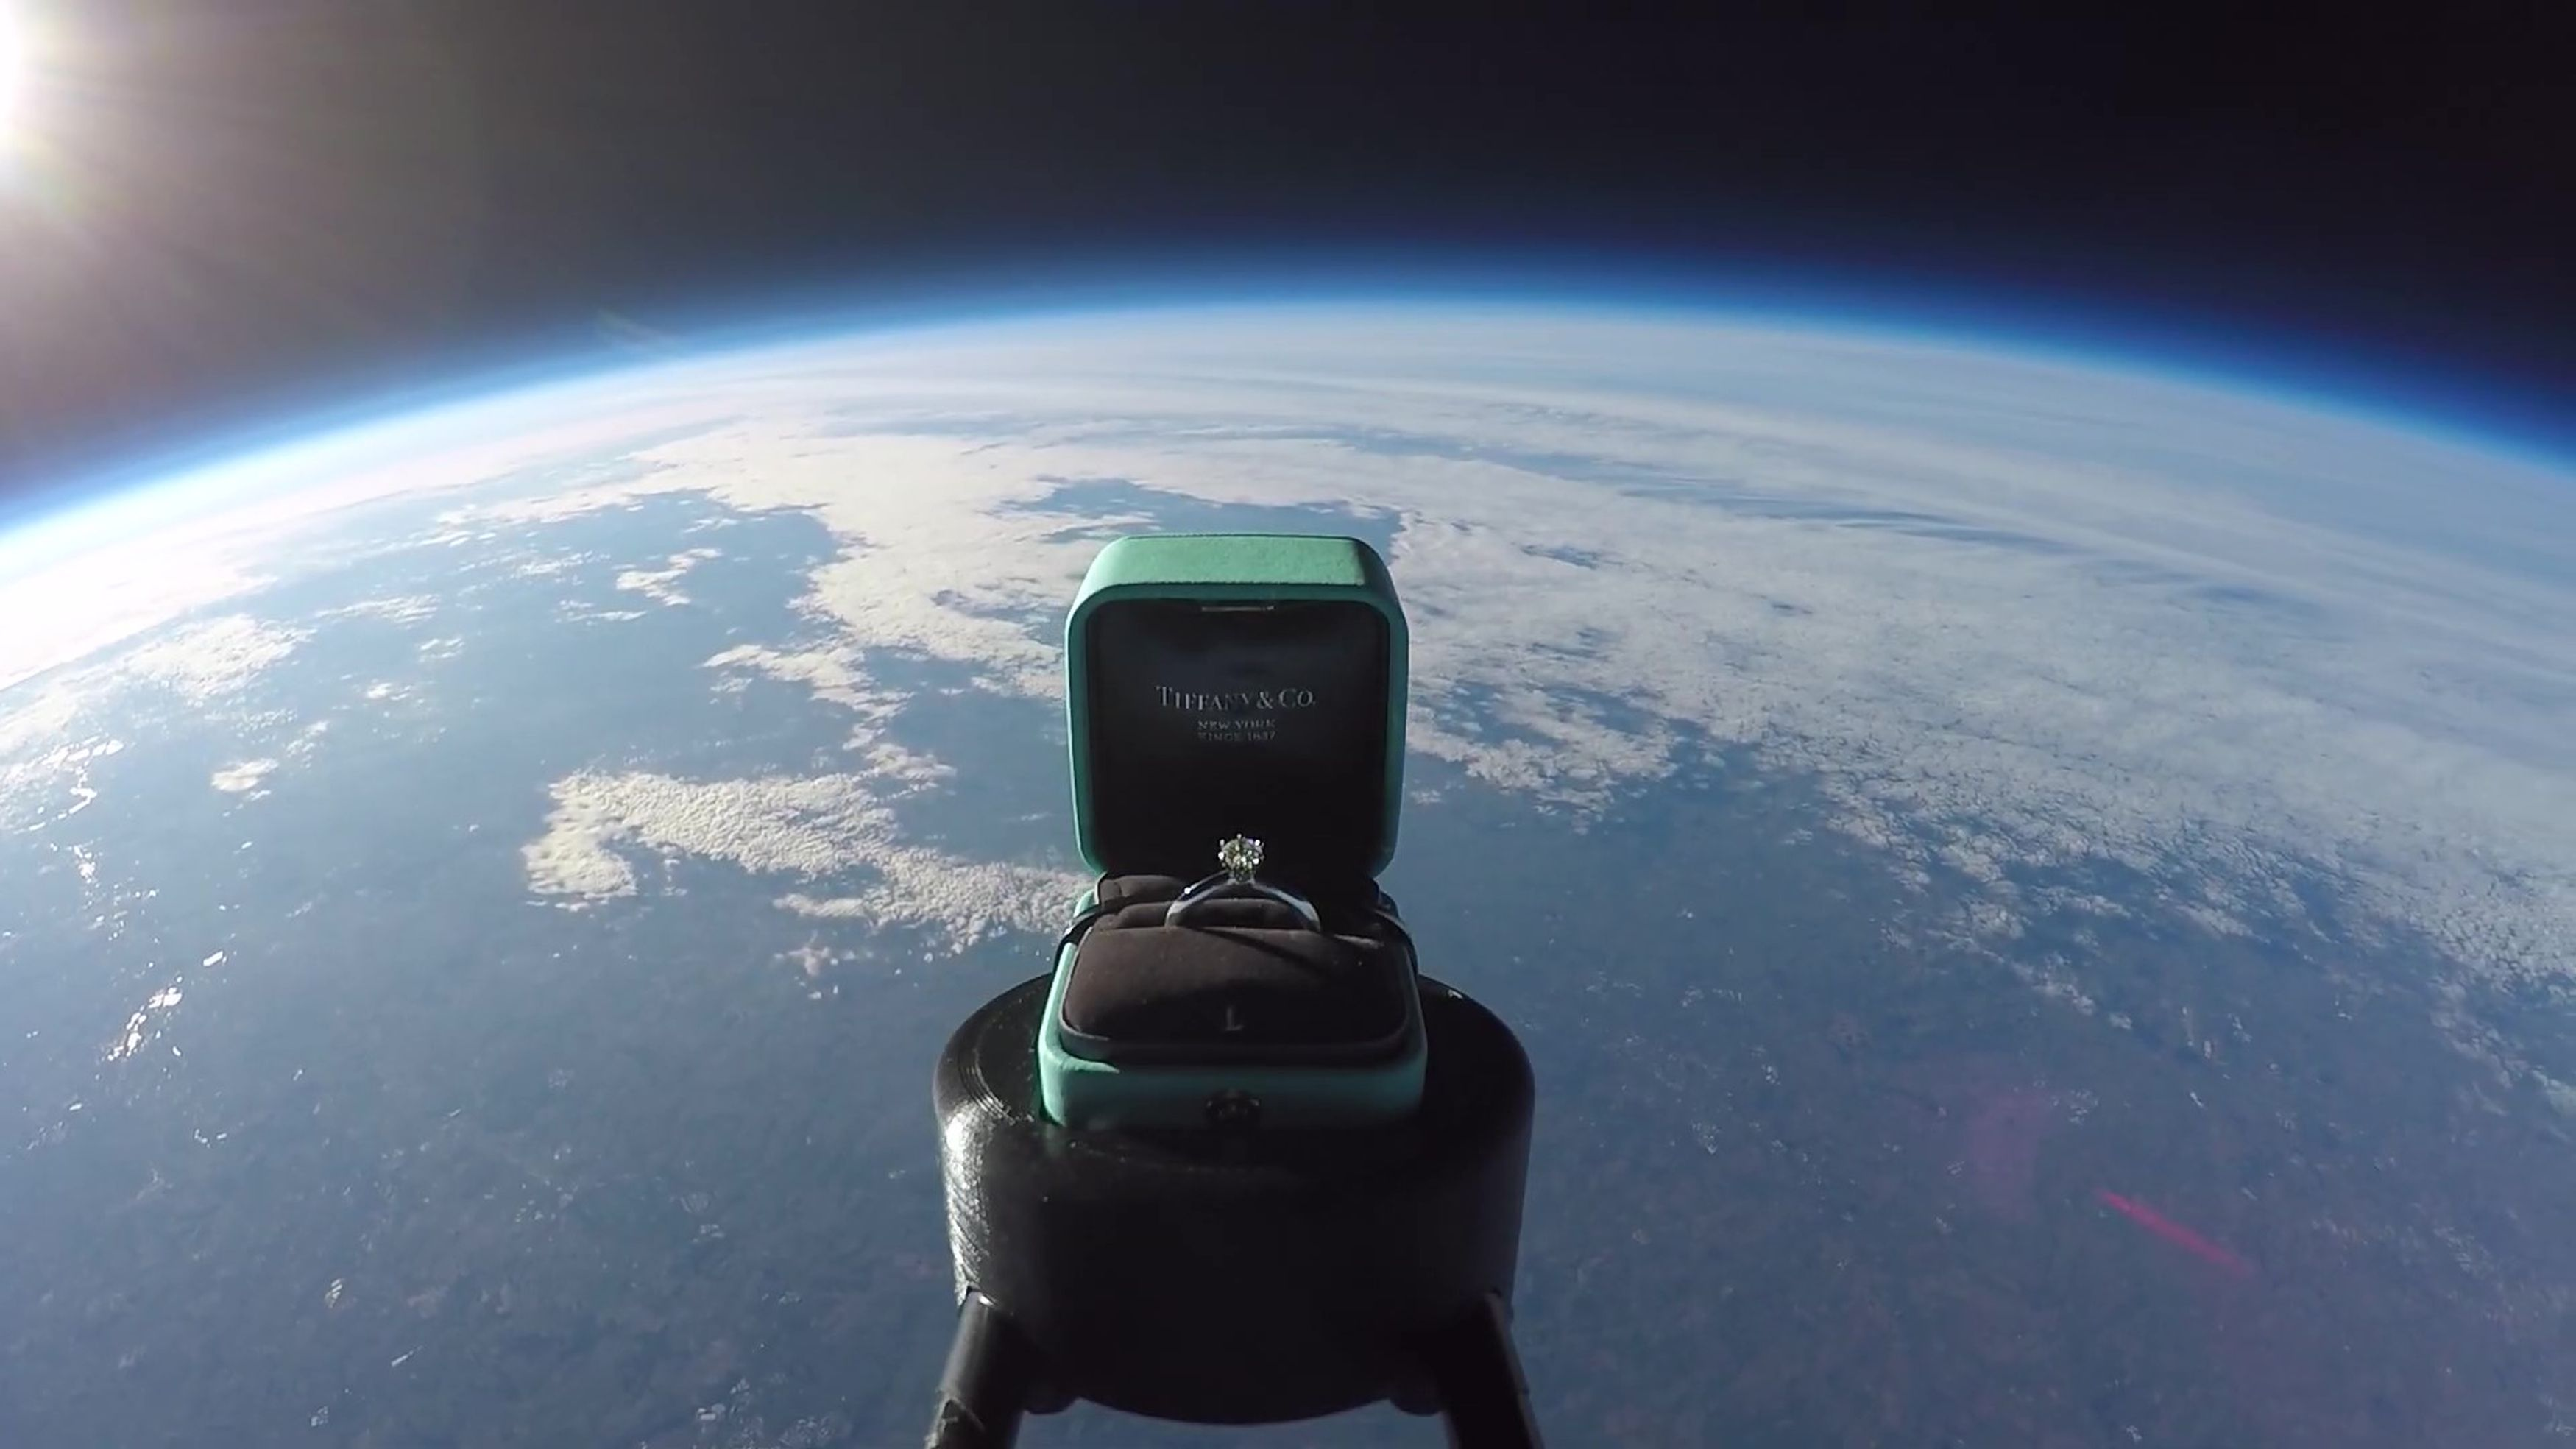 man proposes to girlfriend by sending ring into space